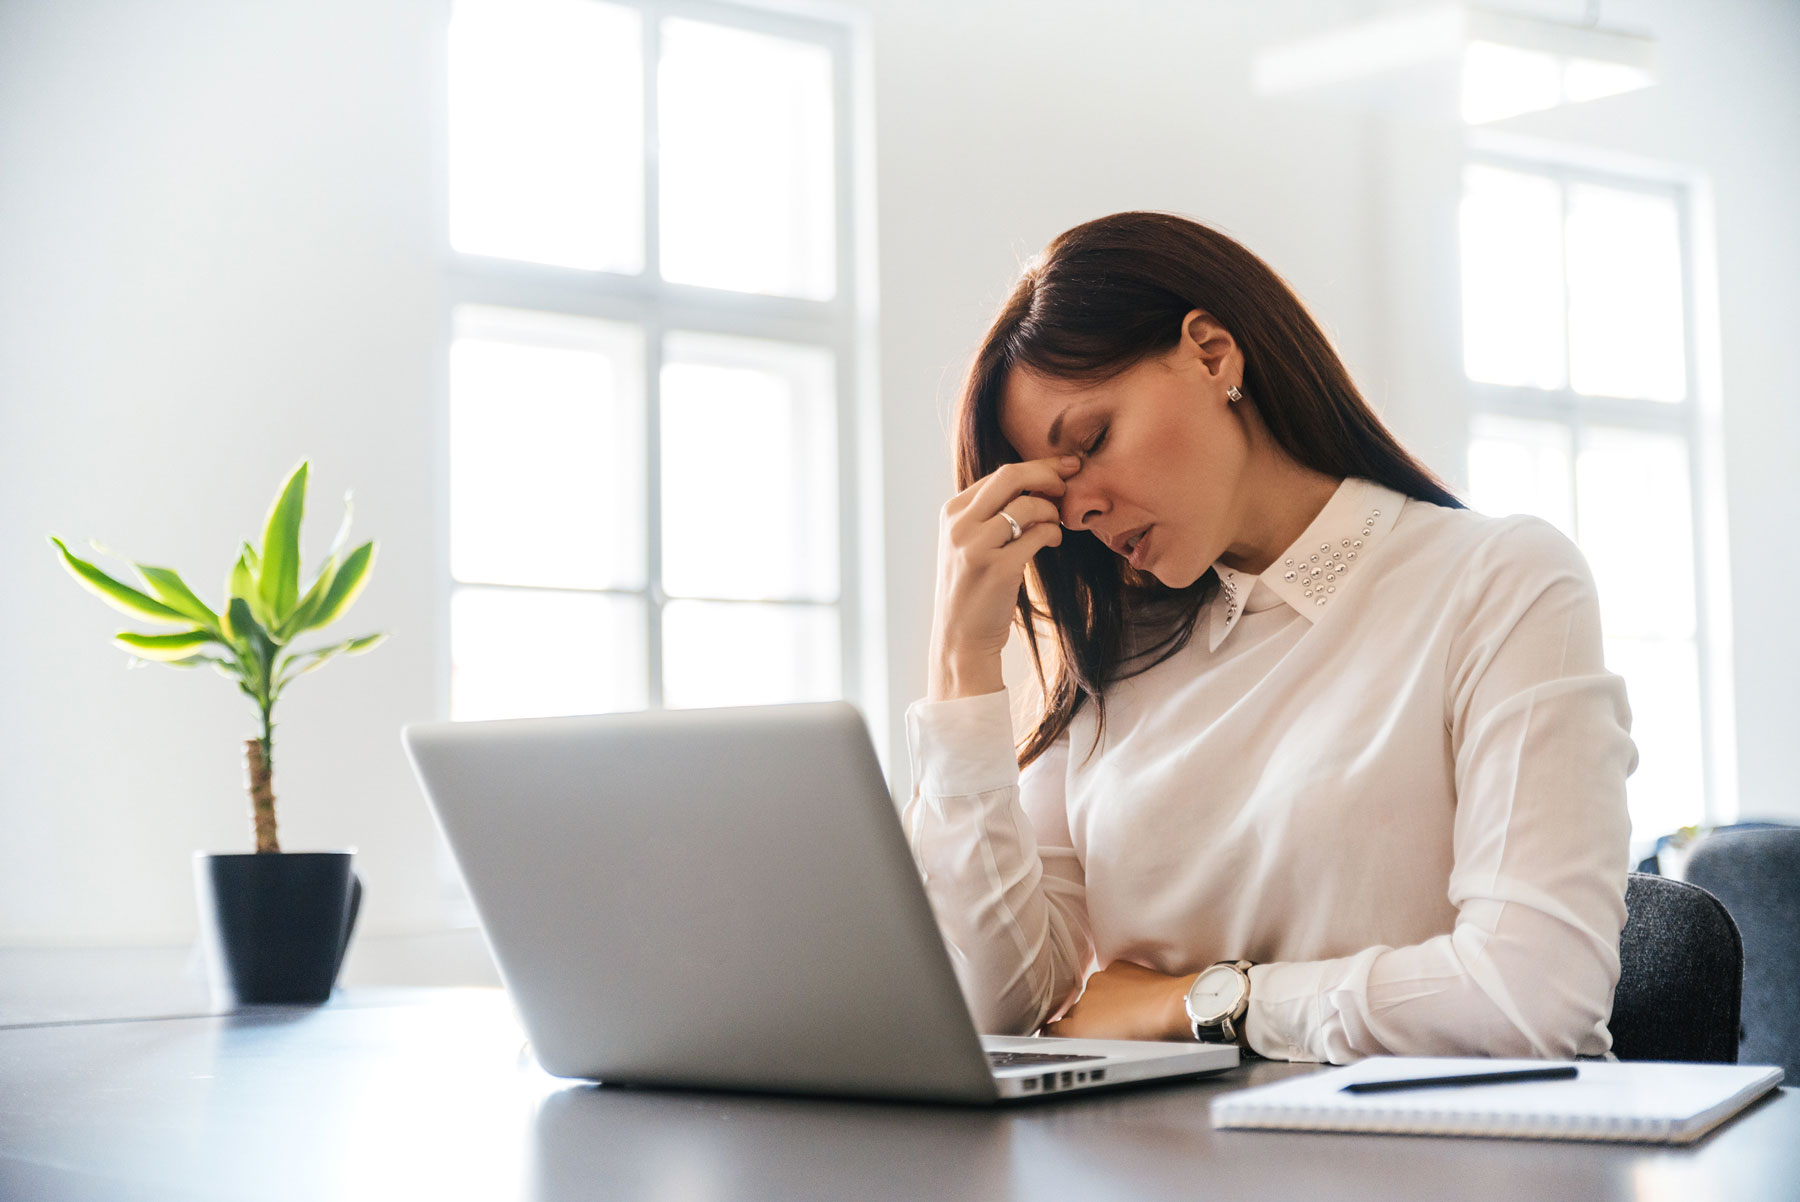 Being an online manager can sometimes be quite stressful. So make sure that you are the kind of person that can deal with it.